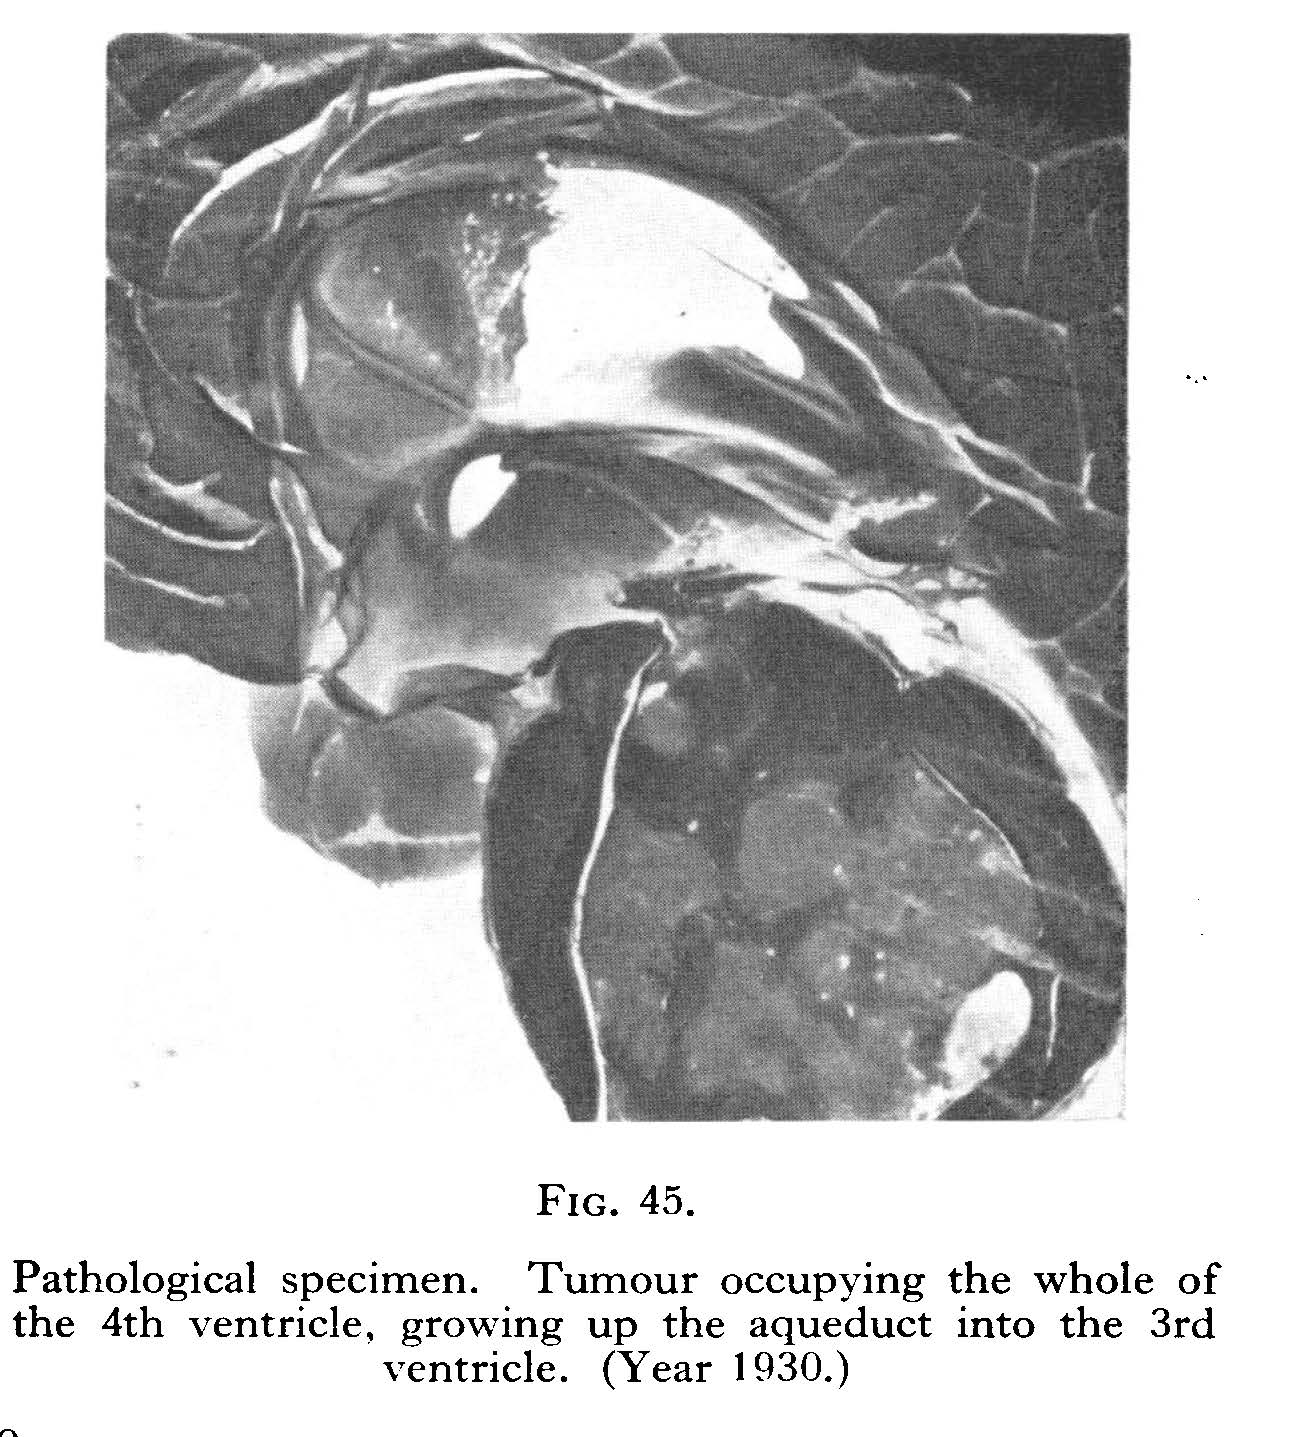 Tumour occupying the whole of the left ventricle